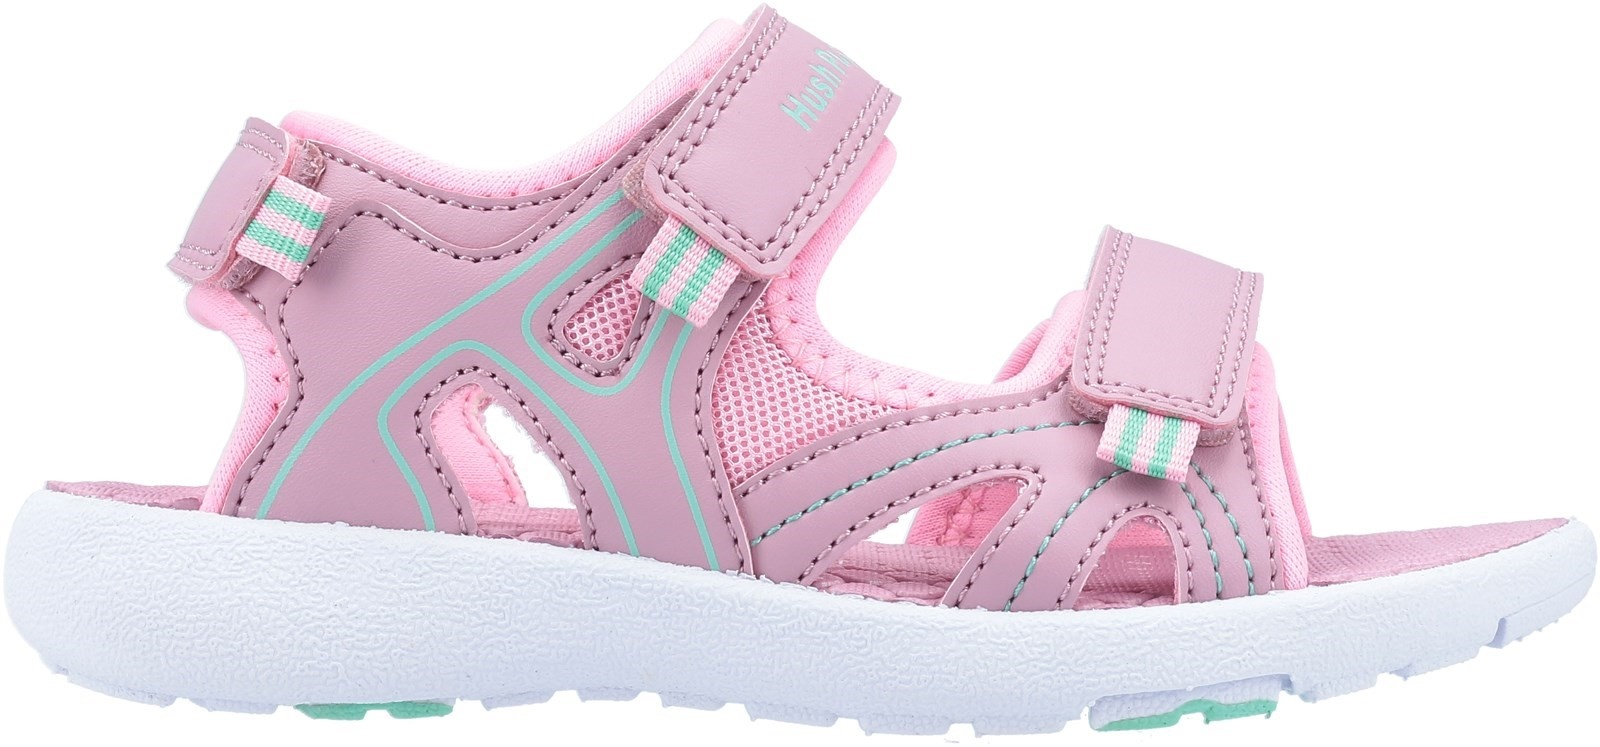 Hush Puppies Lilly Pink